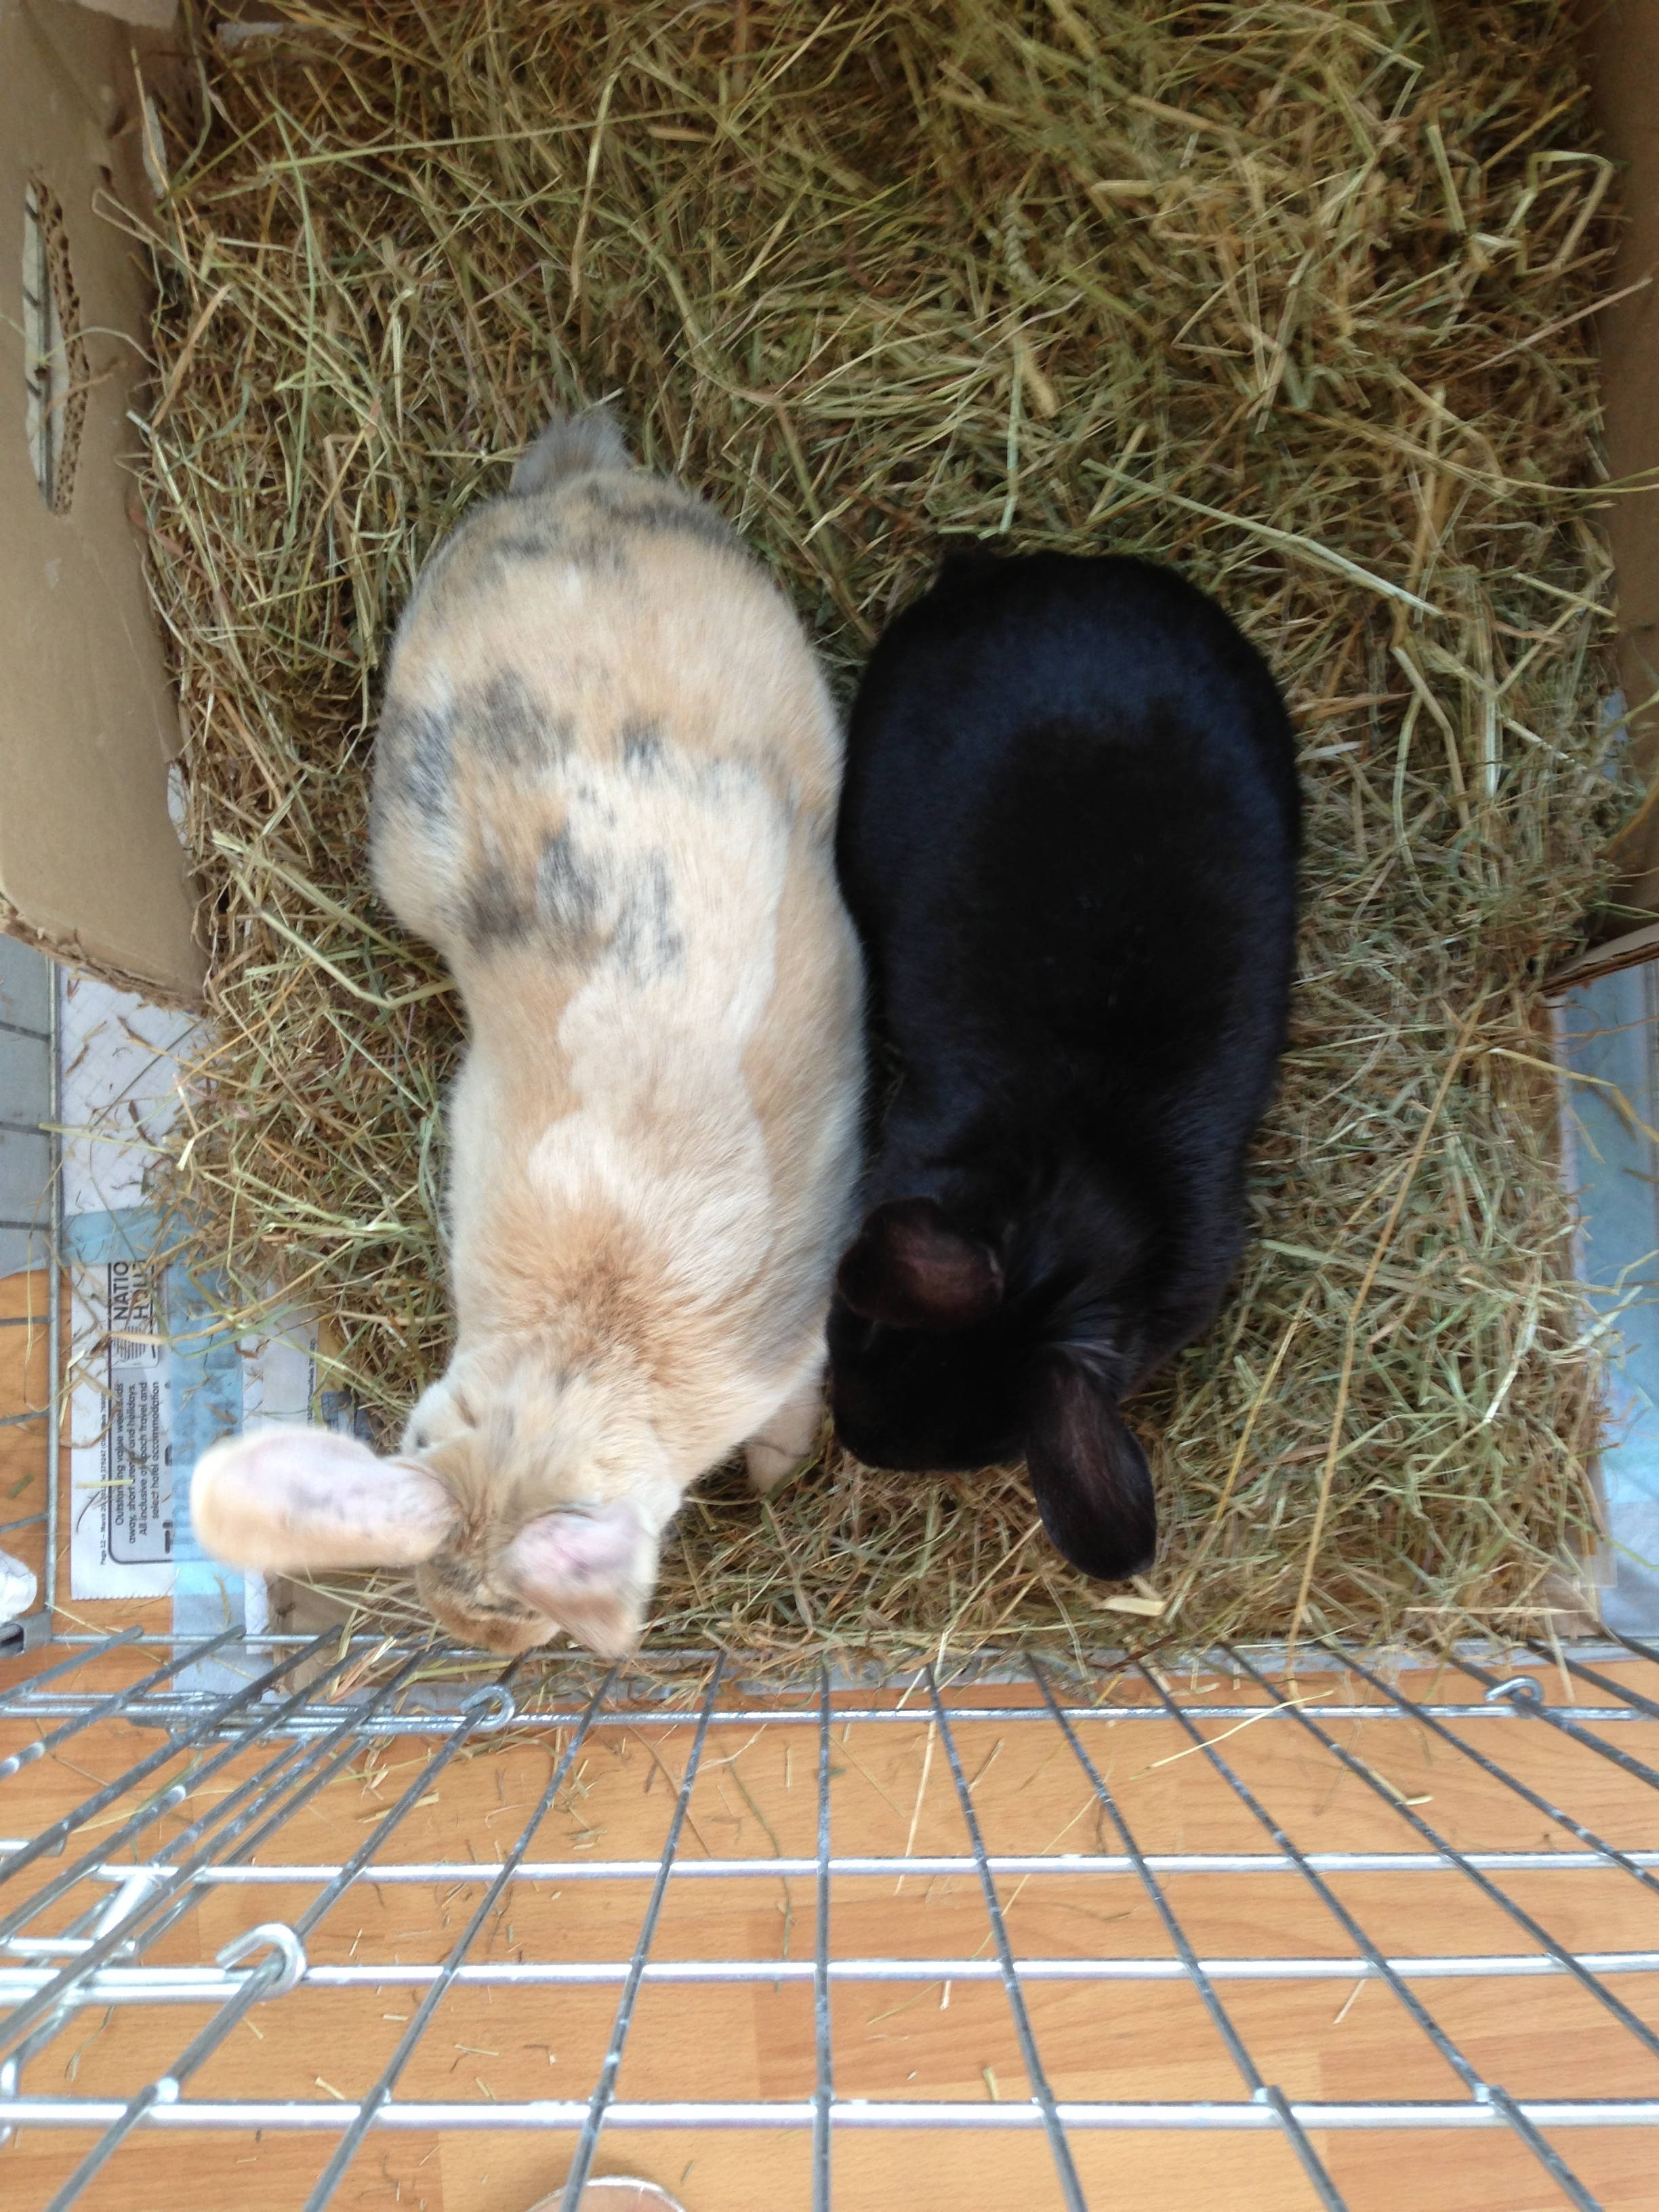 Huey & Harriet during the early stage of bonding.